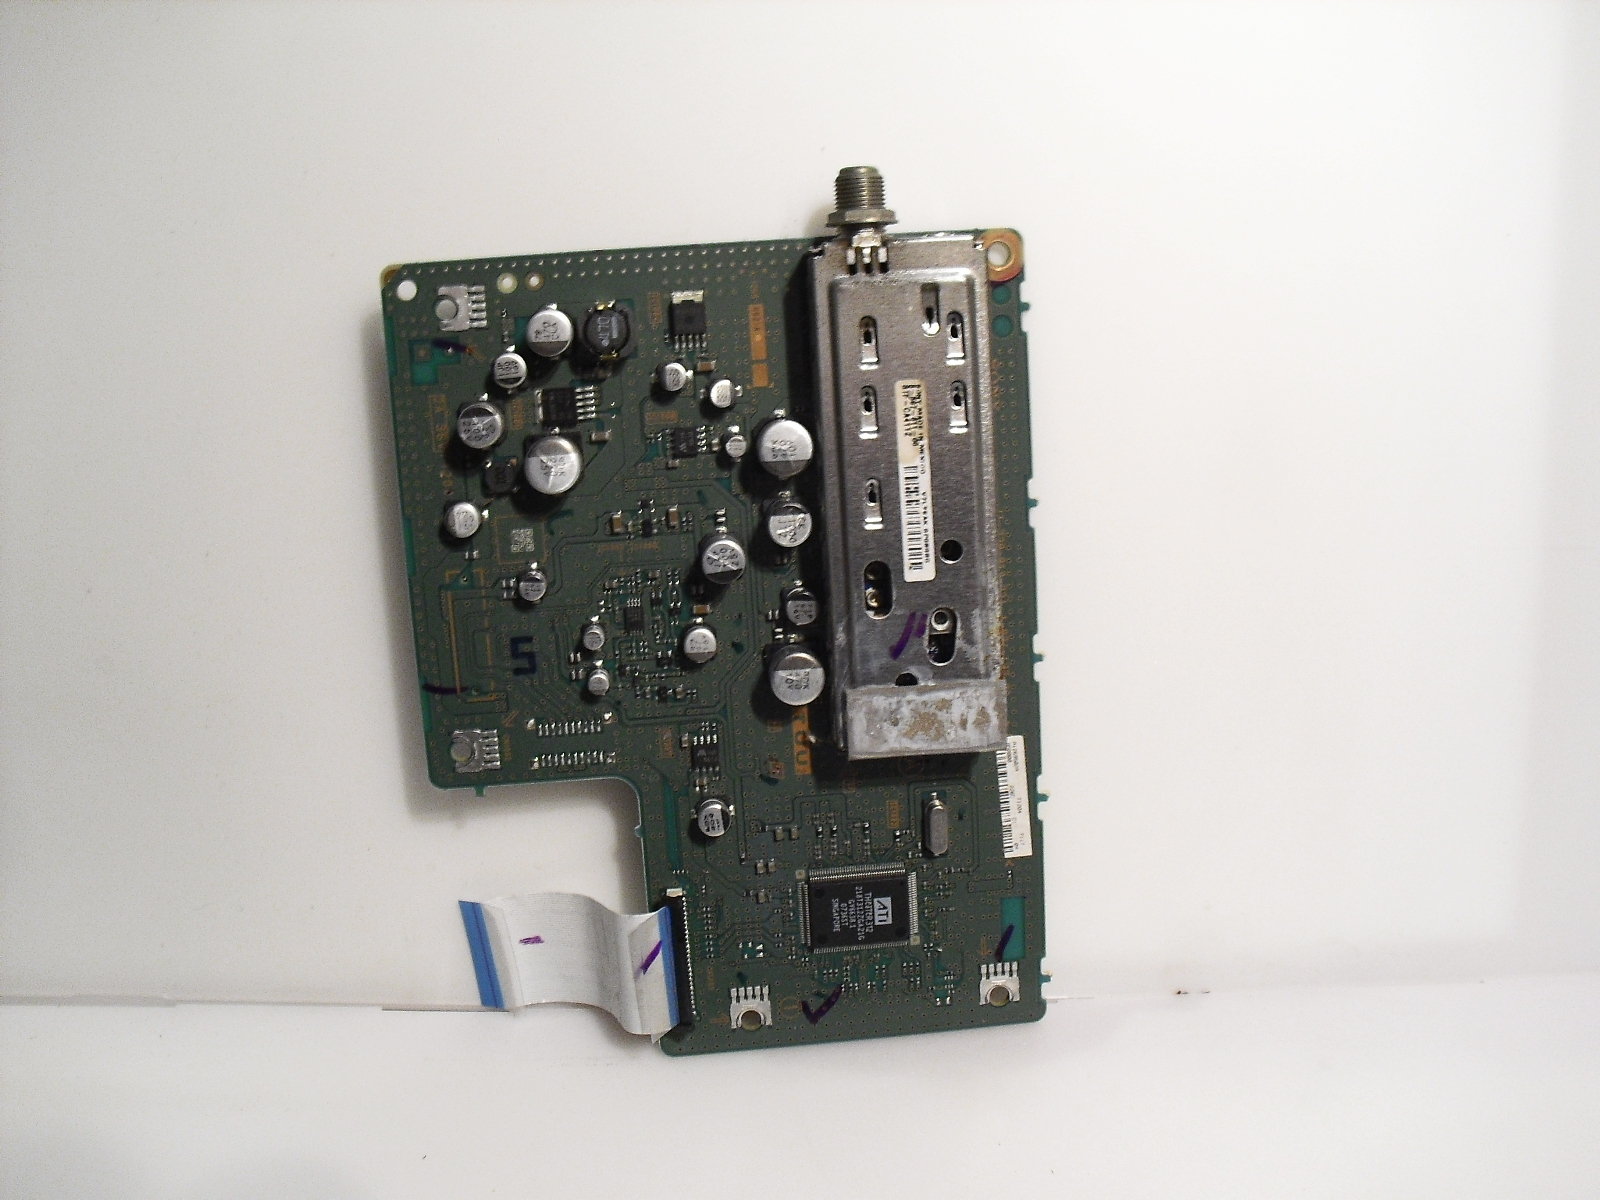 Primary image for 1-874-137-2211   tuner  board  for  sony   kdL-52xbr4